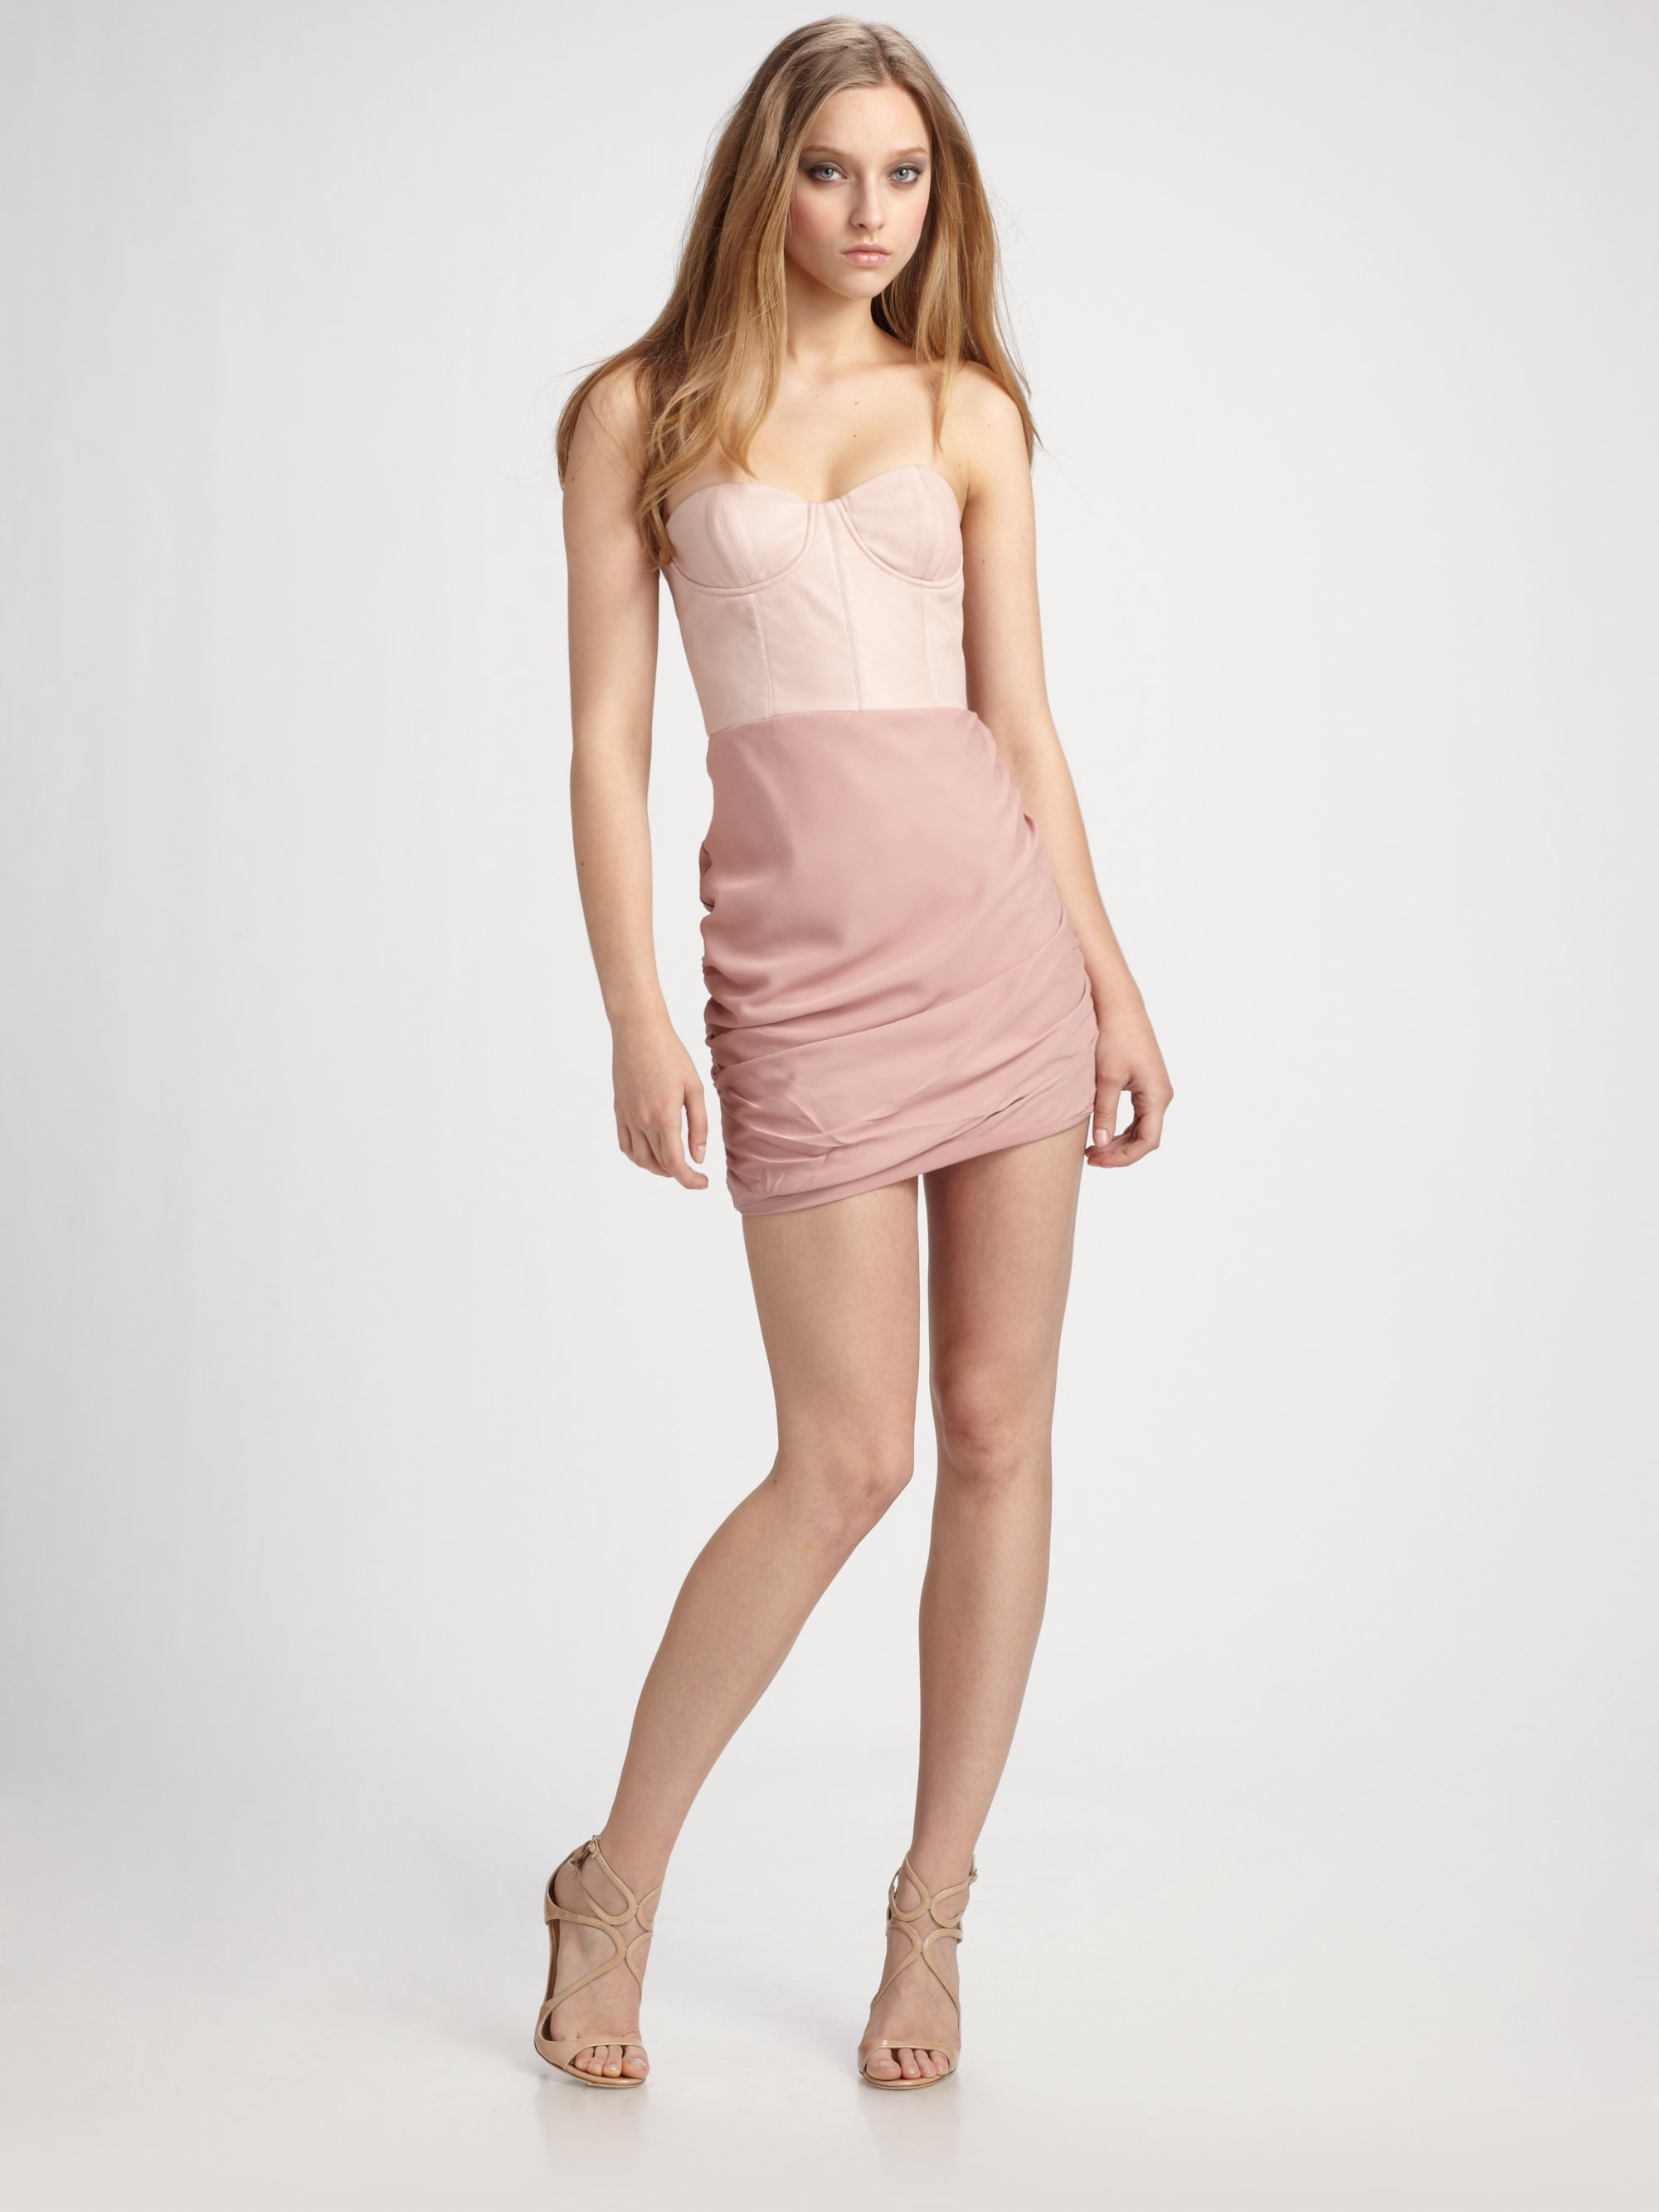 Alice   olivia Mixed Media Bustier Dress in Pink - Lyst